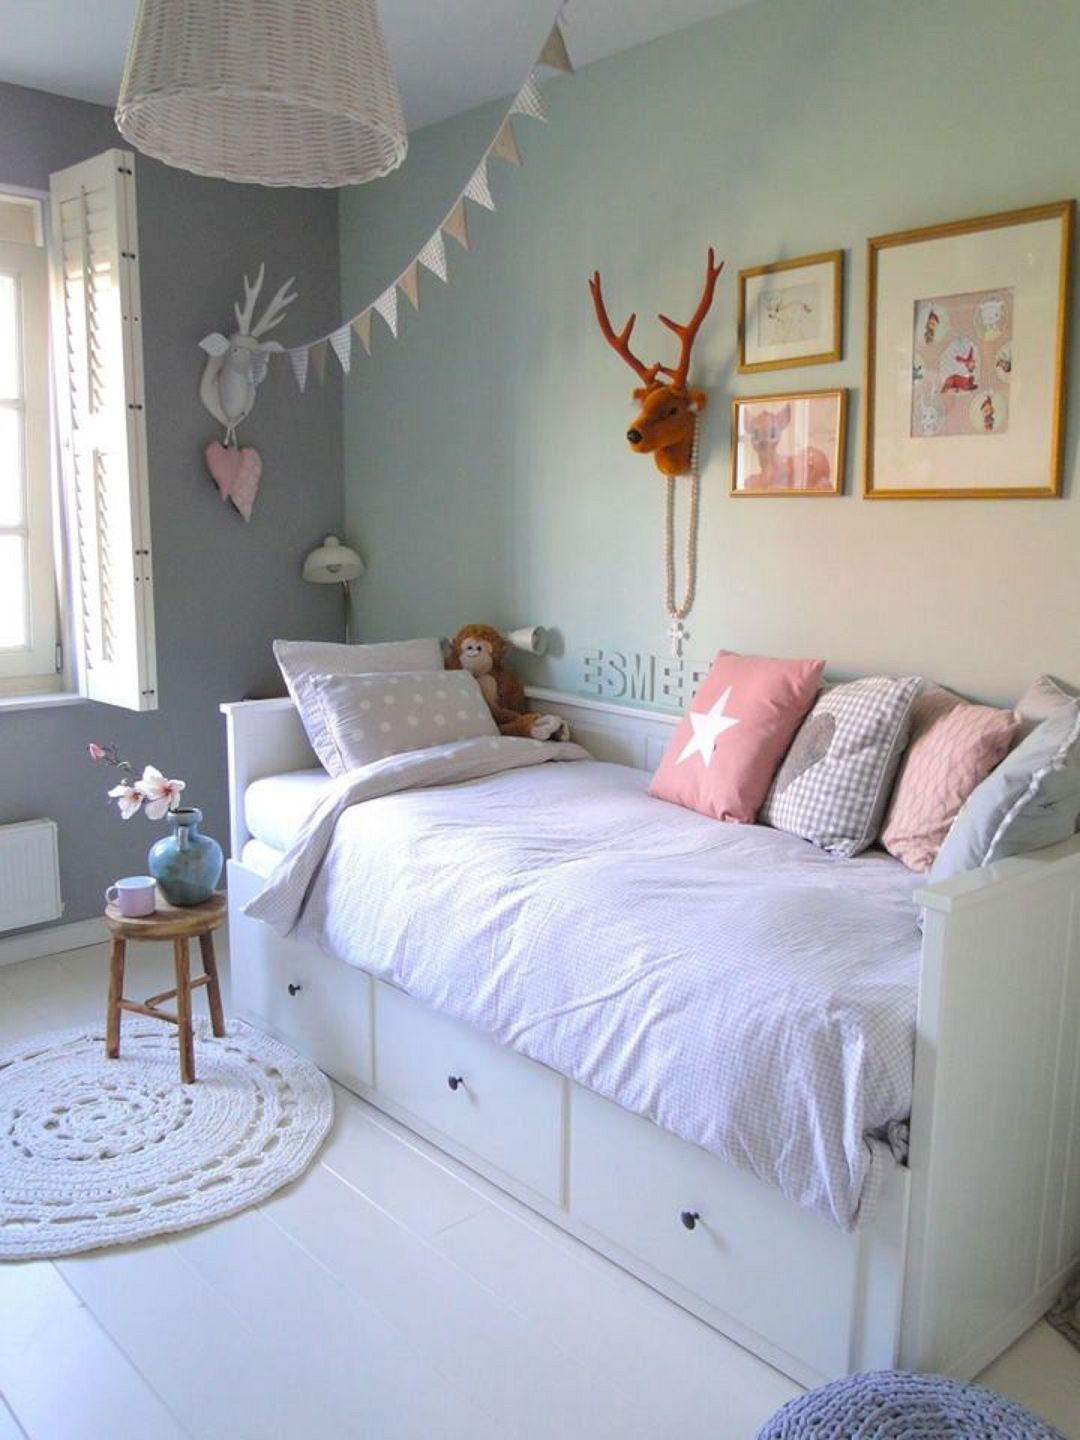 Best Charming Kid's Room Decor Ideas | Gorgeous Interior Ideas ... on fall kitchen, pink bedroom, lighting ideas bedroom, green paint bedroom, window treatments bedroom, orange bedroom, red bedroom, design ideas bedroom, home decor ideas bedroom, ikea ideas bedroom, organization ideas bedroom, fall room decor, diy ideas bedroom, fall inspired bedrooms, halloween bedroom, ikat bedroom, aqua bedroom, thanksgiving bedroom, paint ideas bedroom, ottoman bedroom,